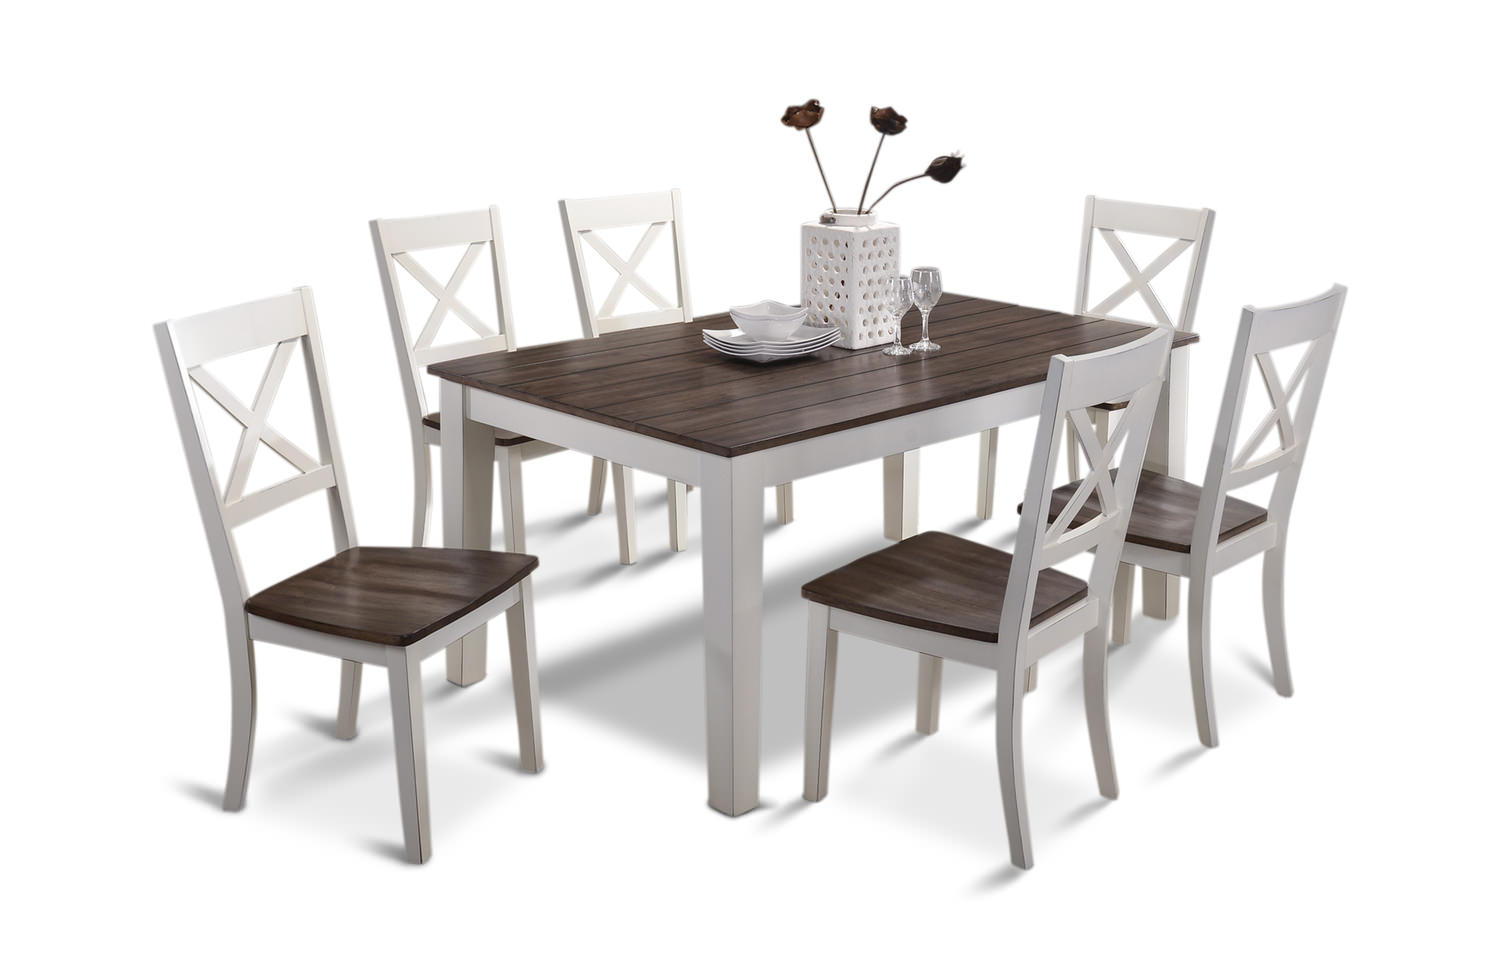 A La Carte Dining Table And 4 Chairs